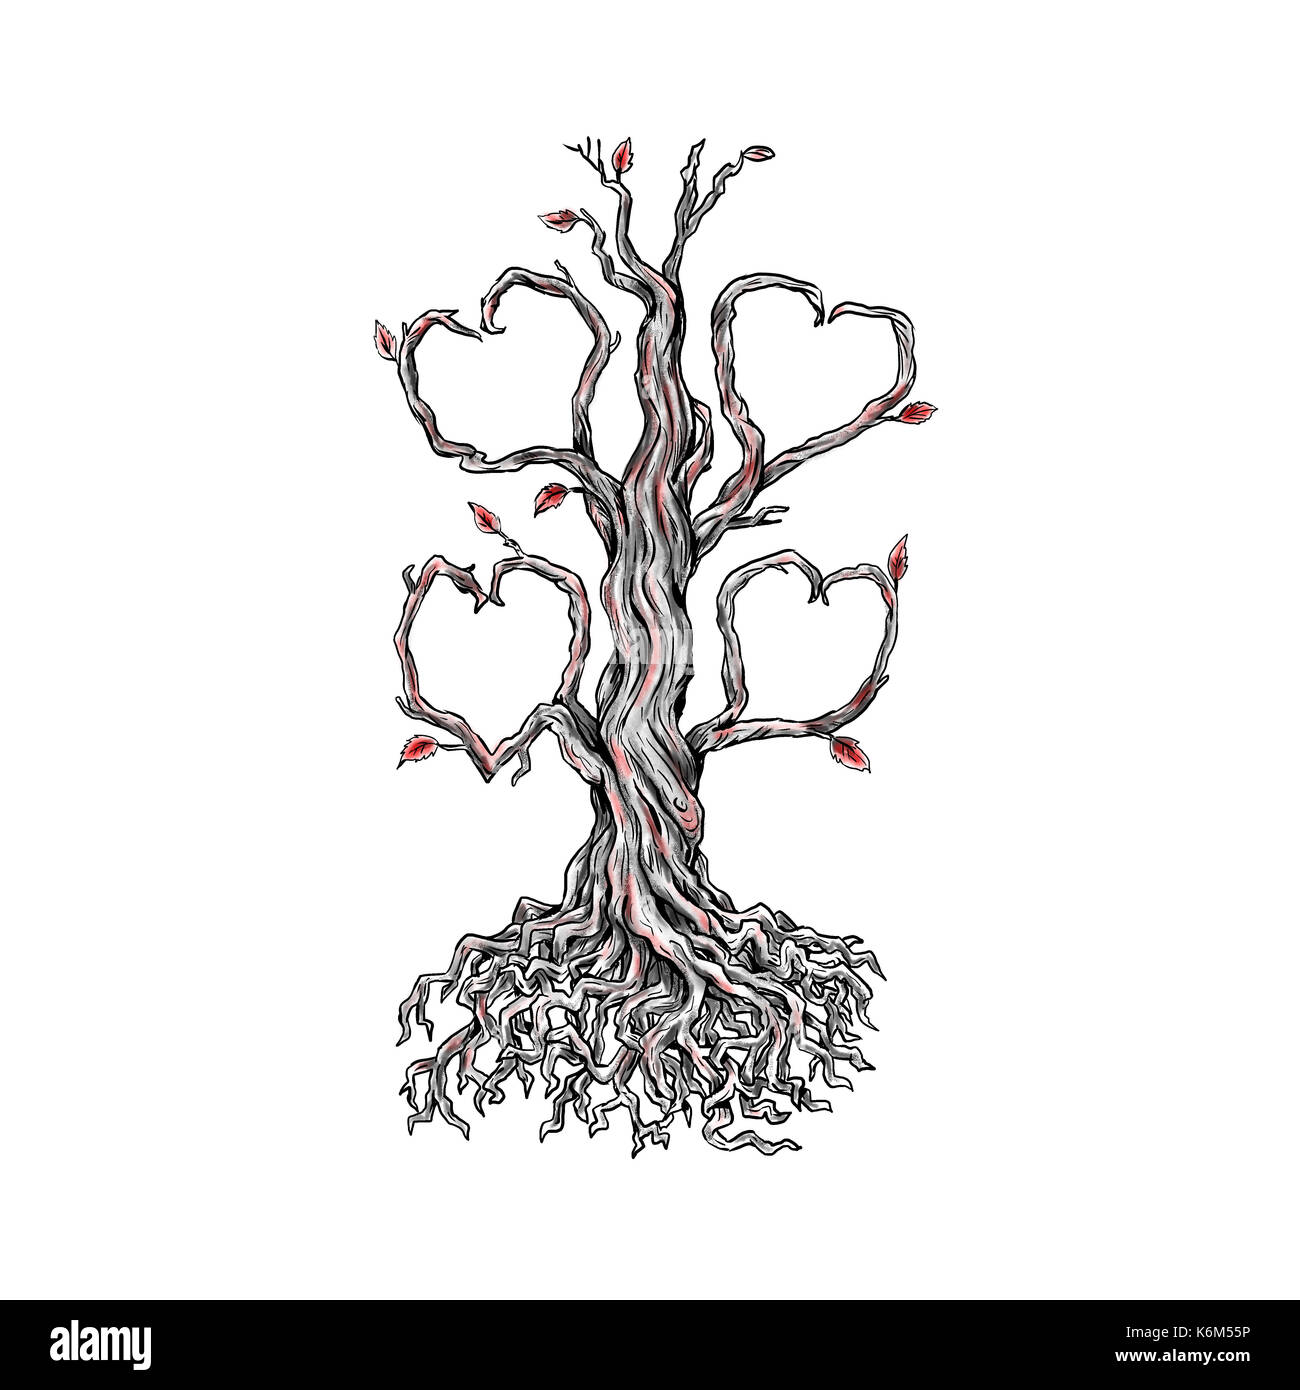 Oak Tree With Roots Tattoo: Tattoo Style Illustration Of A Gnarly Old Oak Tree With